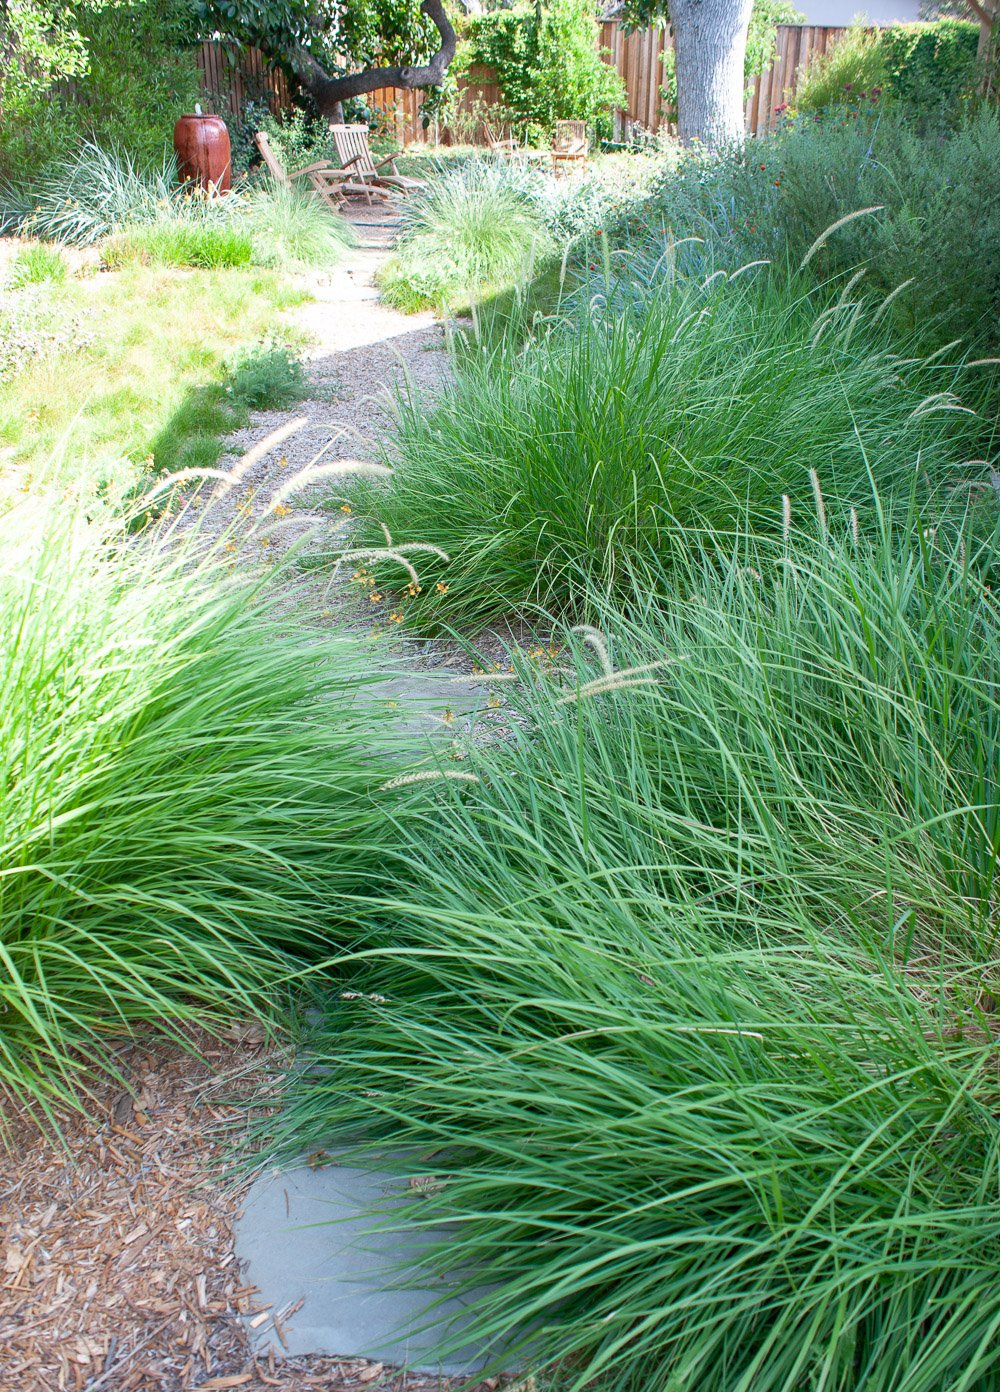 Ornamental grasses need to be maintained